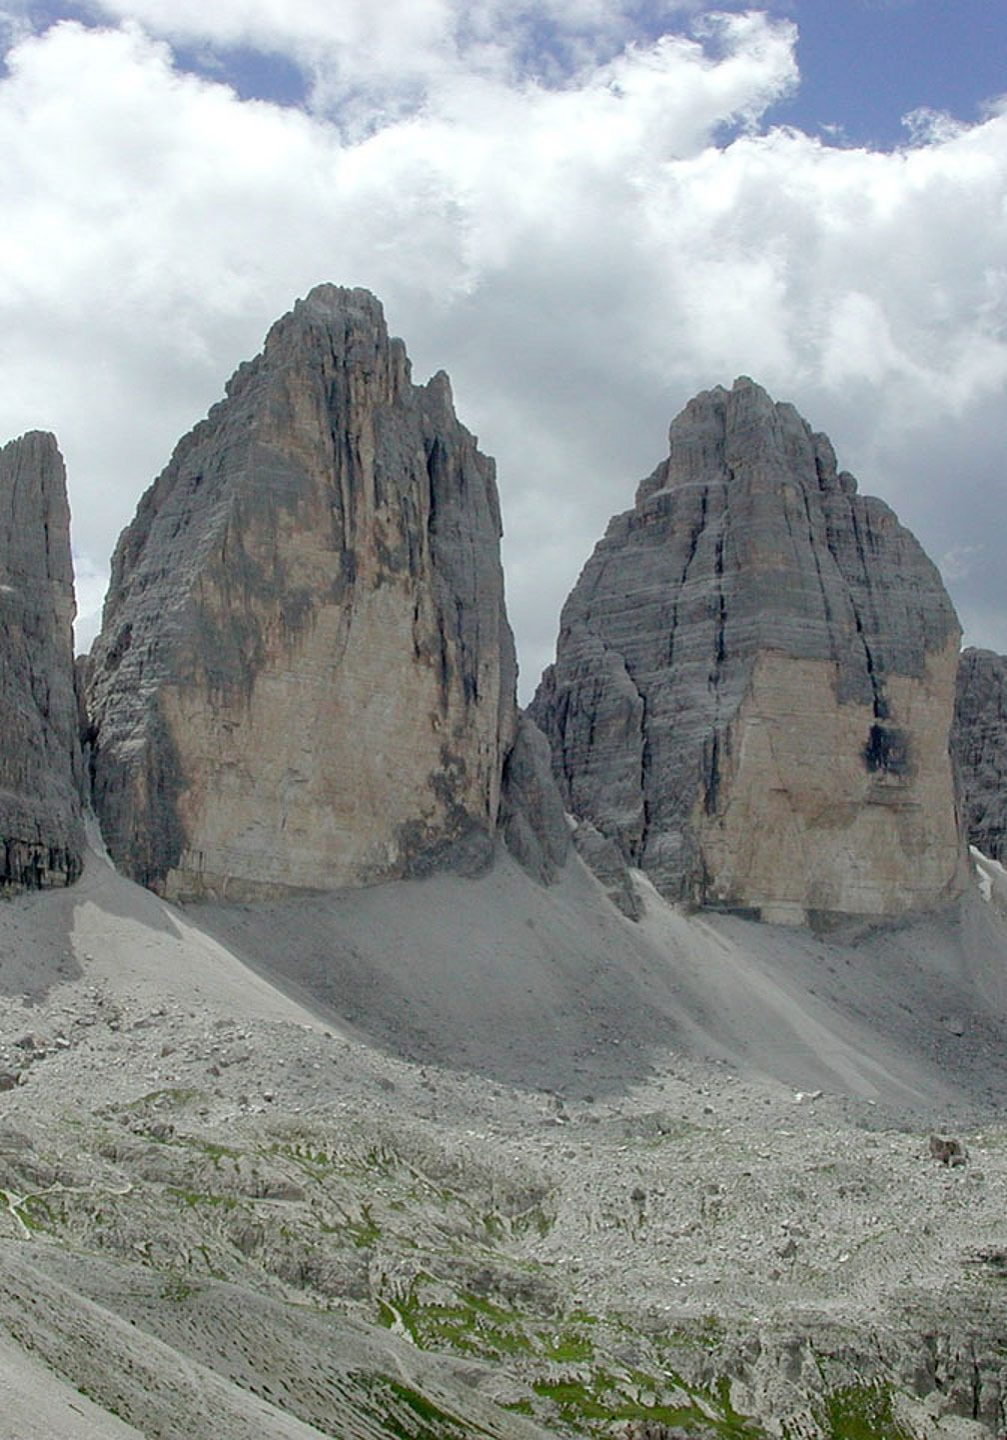 "The Tre Cime di Lavaredo is probably one of the best-known mountain groups in the Alps. They are named, from east to west Cima Piccola / Kleine Zinne (""little peak""), Cima Grande / Große Zinne (""big peak""), Cima Ovest / Westliche Zinne (""western peak"")"